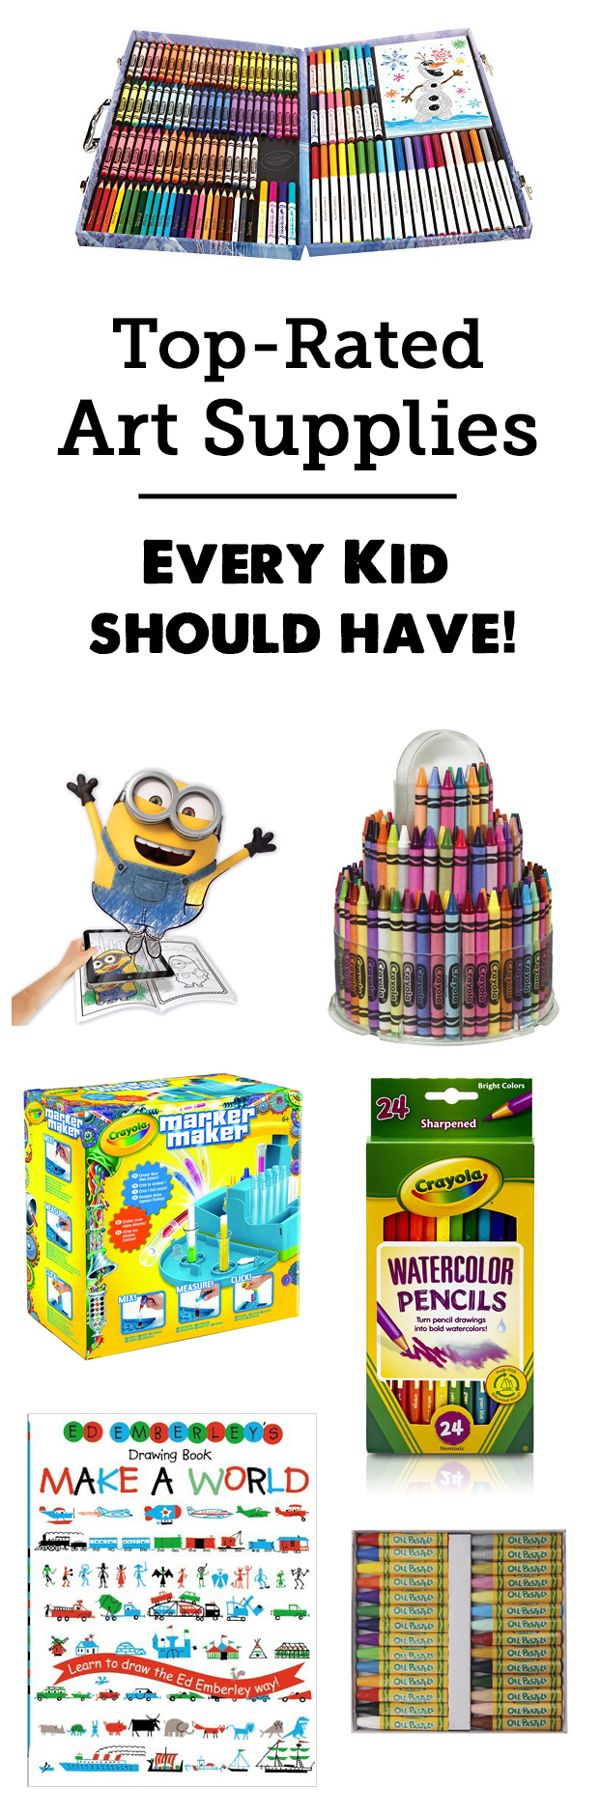 Gift guide: Best Art Supplies for Kids for open-ended creativity - all great to have on hand for a rainy day! Really appreciated the description of each toy and age recommendations!